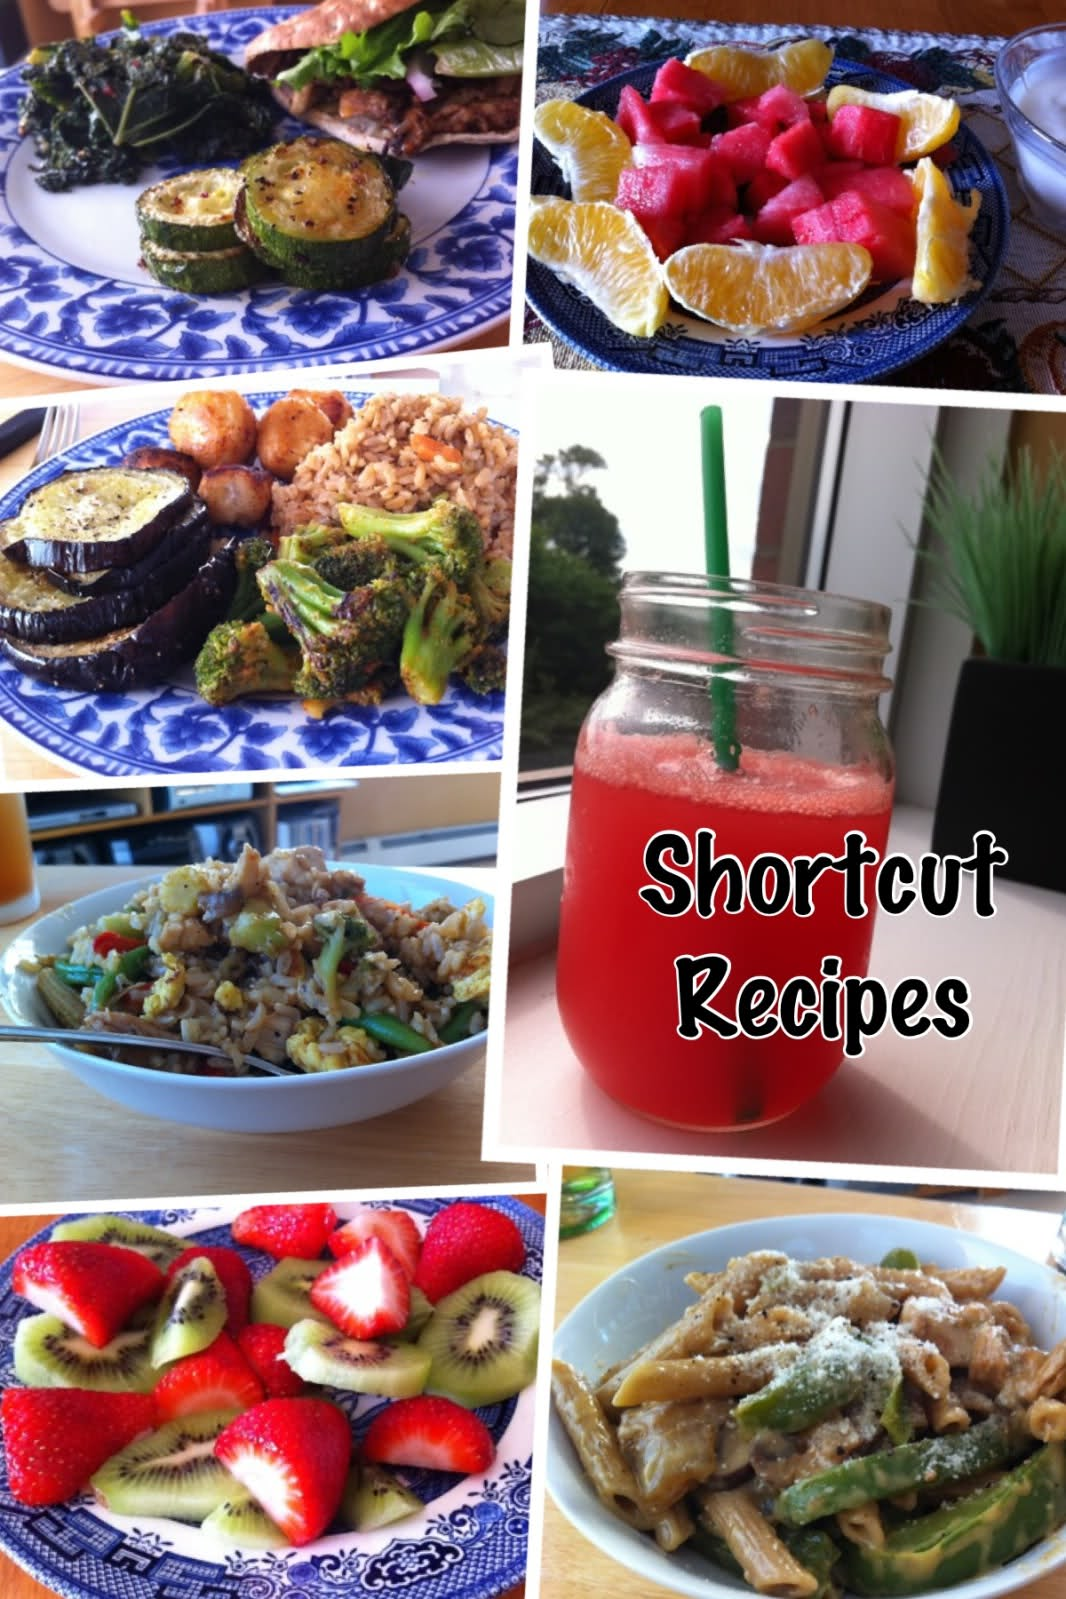 Shortcut Recipes Recap